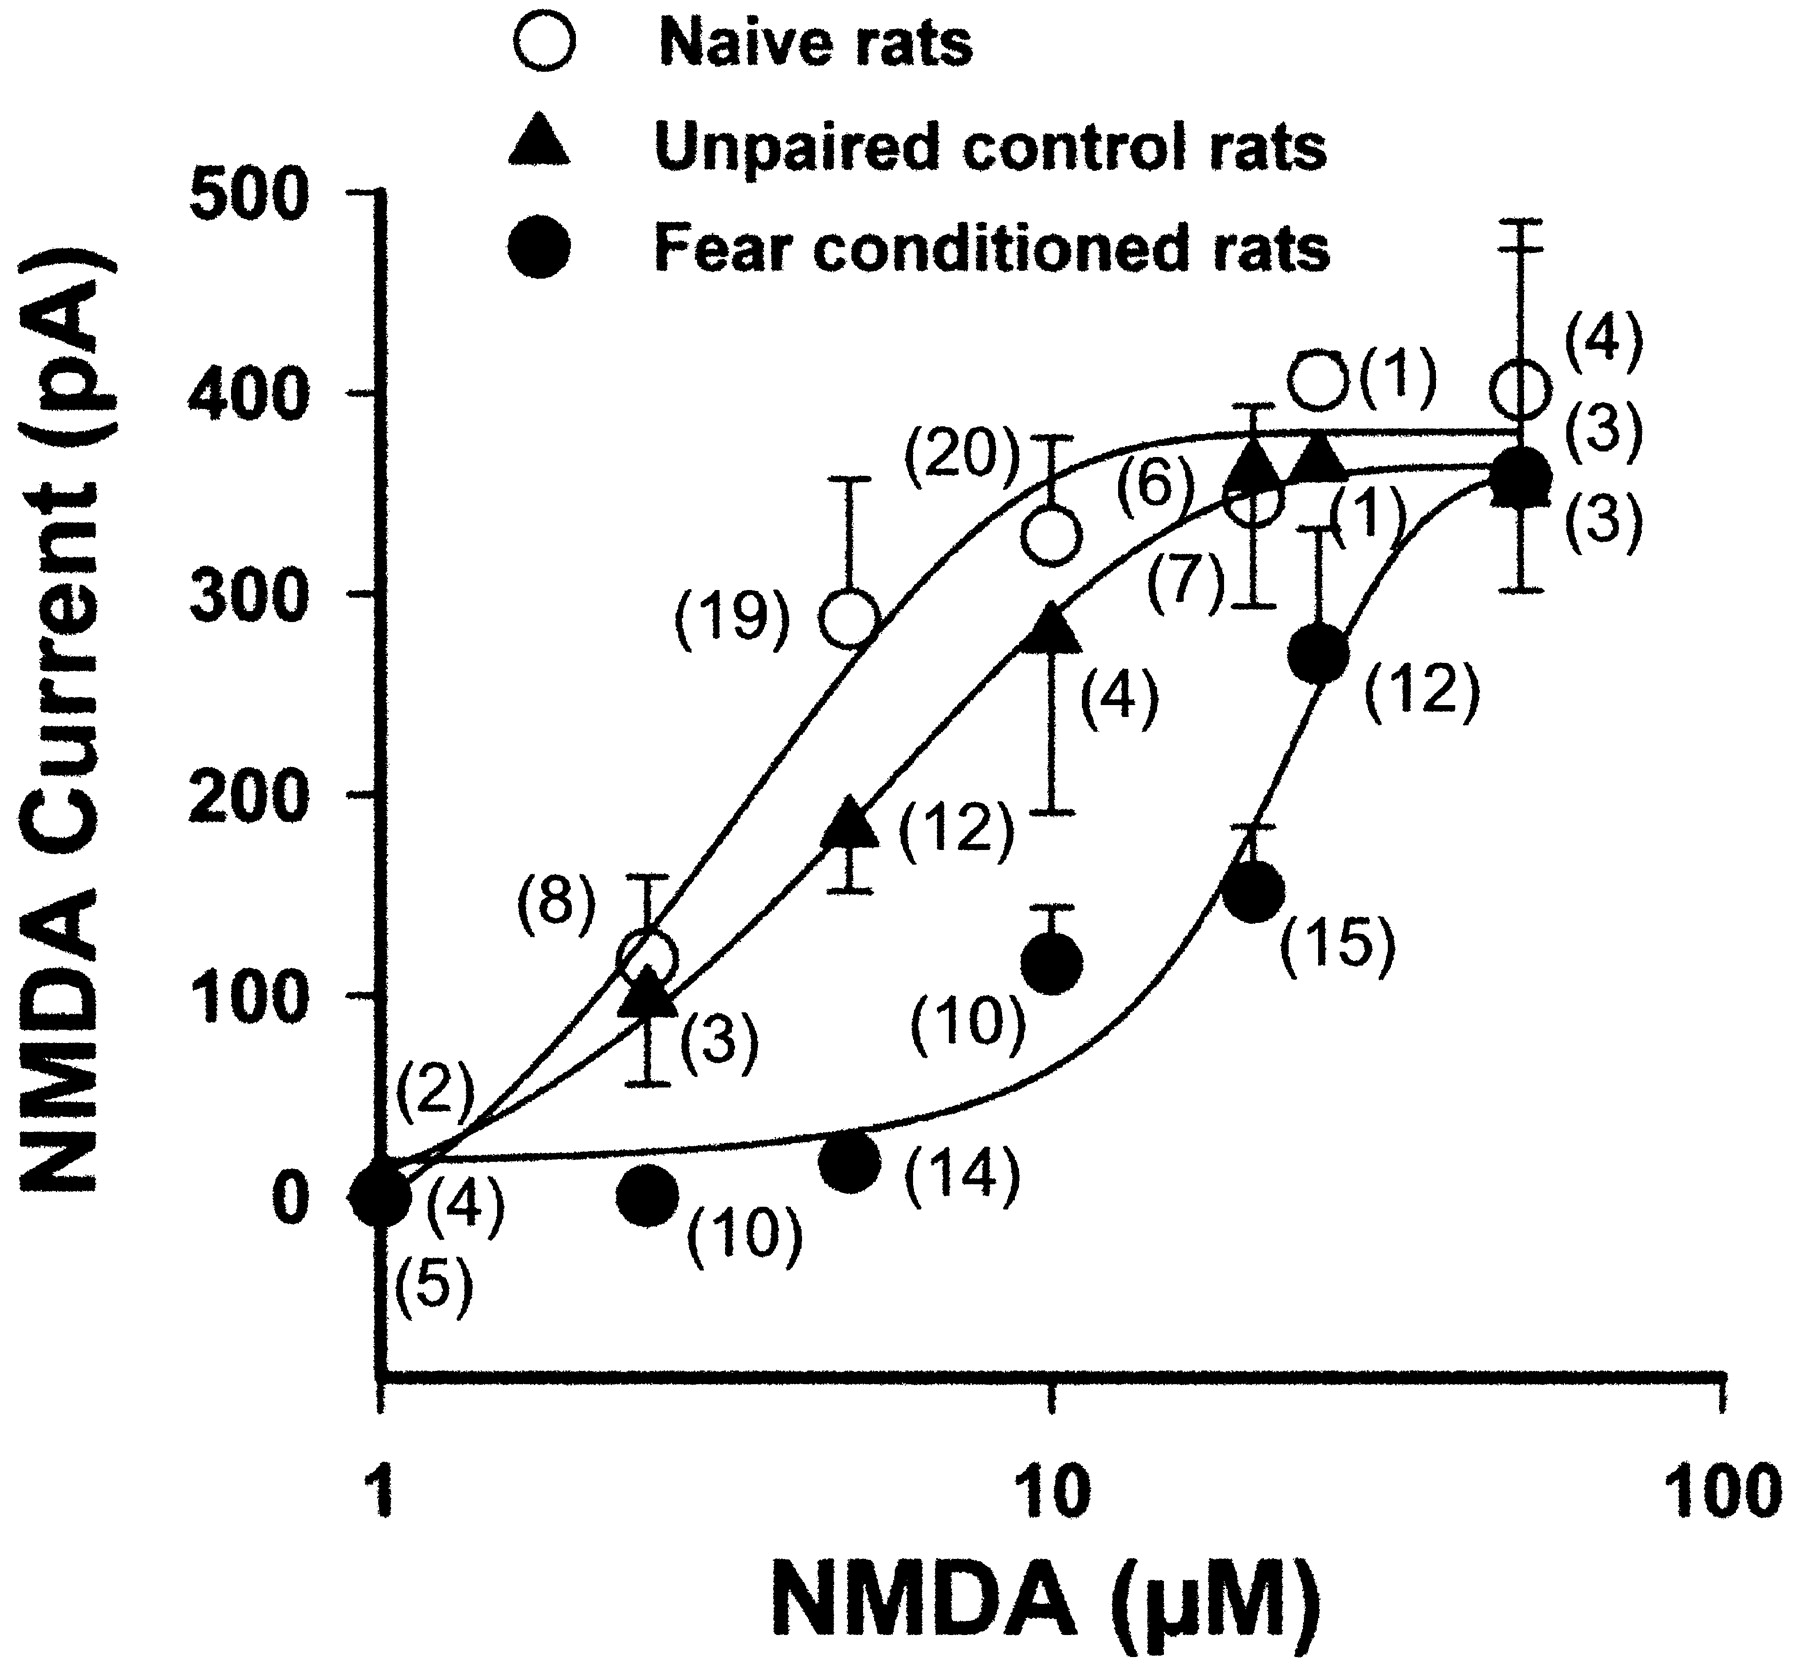 NMDA Currents and Receptor Protein Are Downregulated in the Amygdala